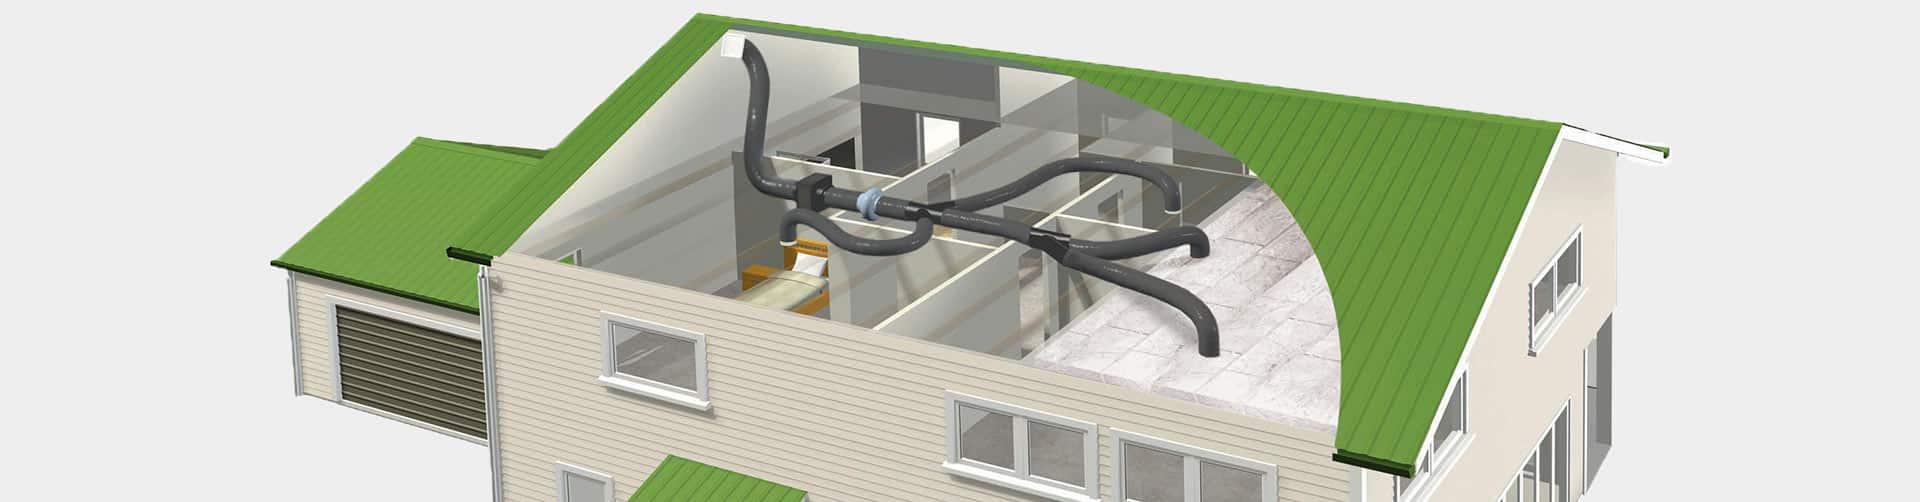 Ventilation Systems NZ – Perfect Ventilation System For Your Home